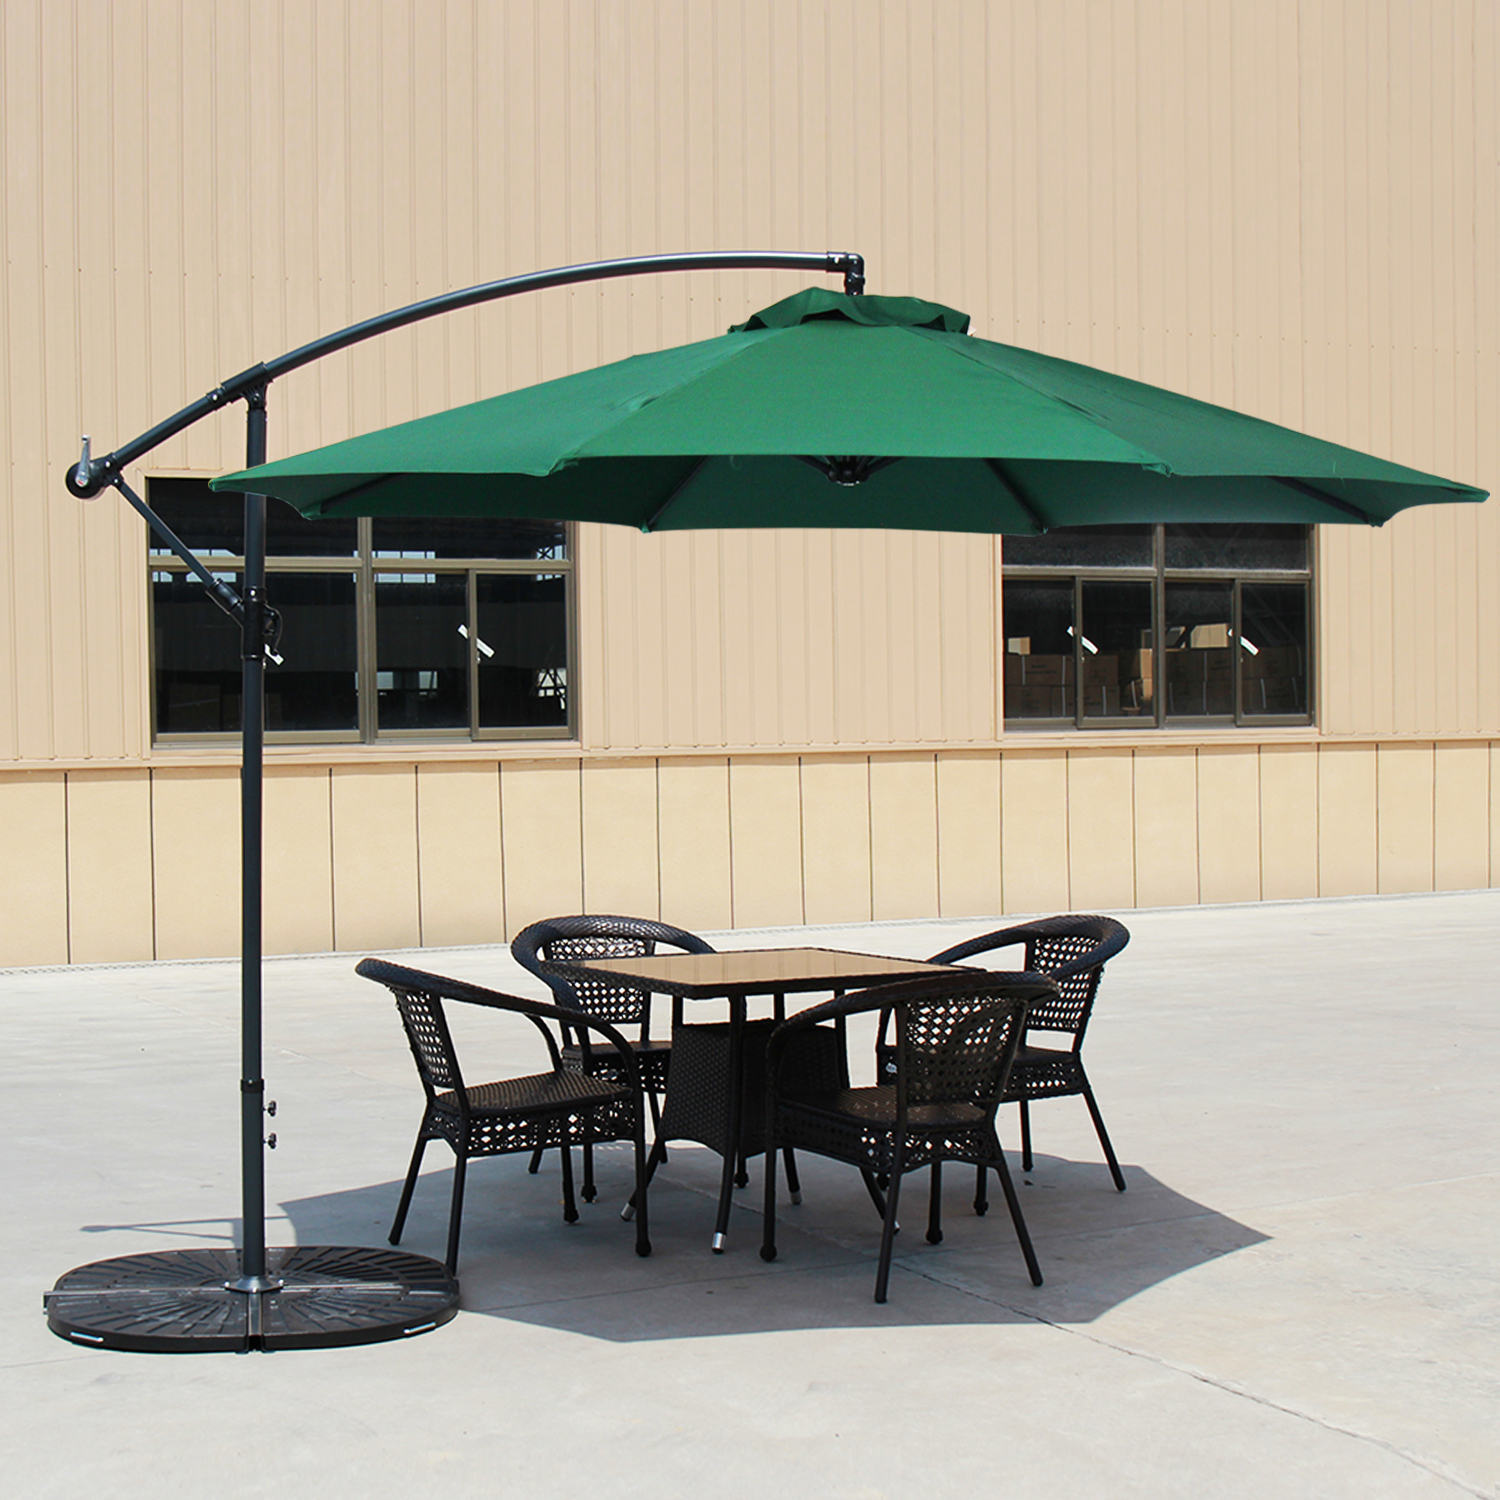 Baner Garden 10' CA-2001G Offset Hanging Patio Adjustable Polyester UV Umbrella Freestanding Outdoor Parasol Cantilever with Crank Lift, Green